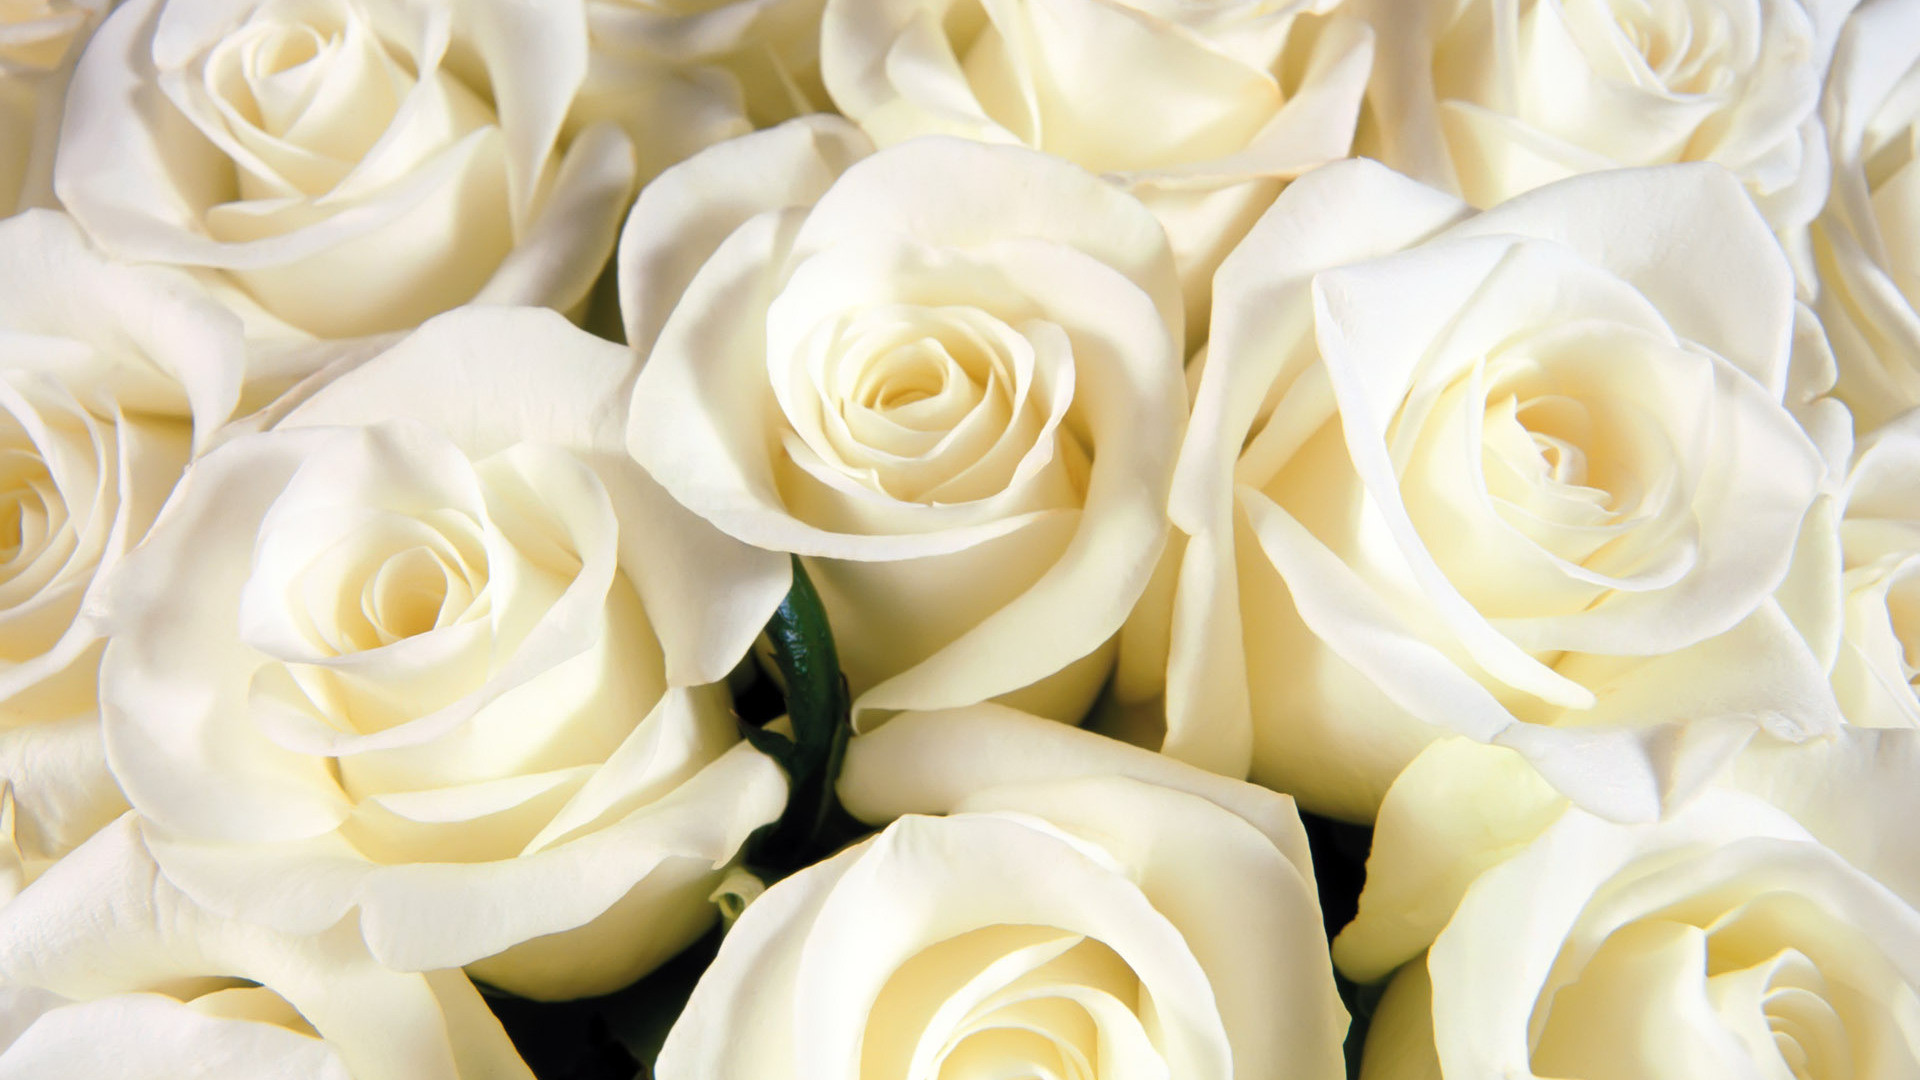 Res: 1920x1080, White Rose Wallpapers – Resolution: , Rodger Sparacino for PC & Mac, Laptop, Tablet, Mobile Phone